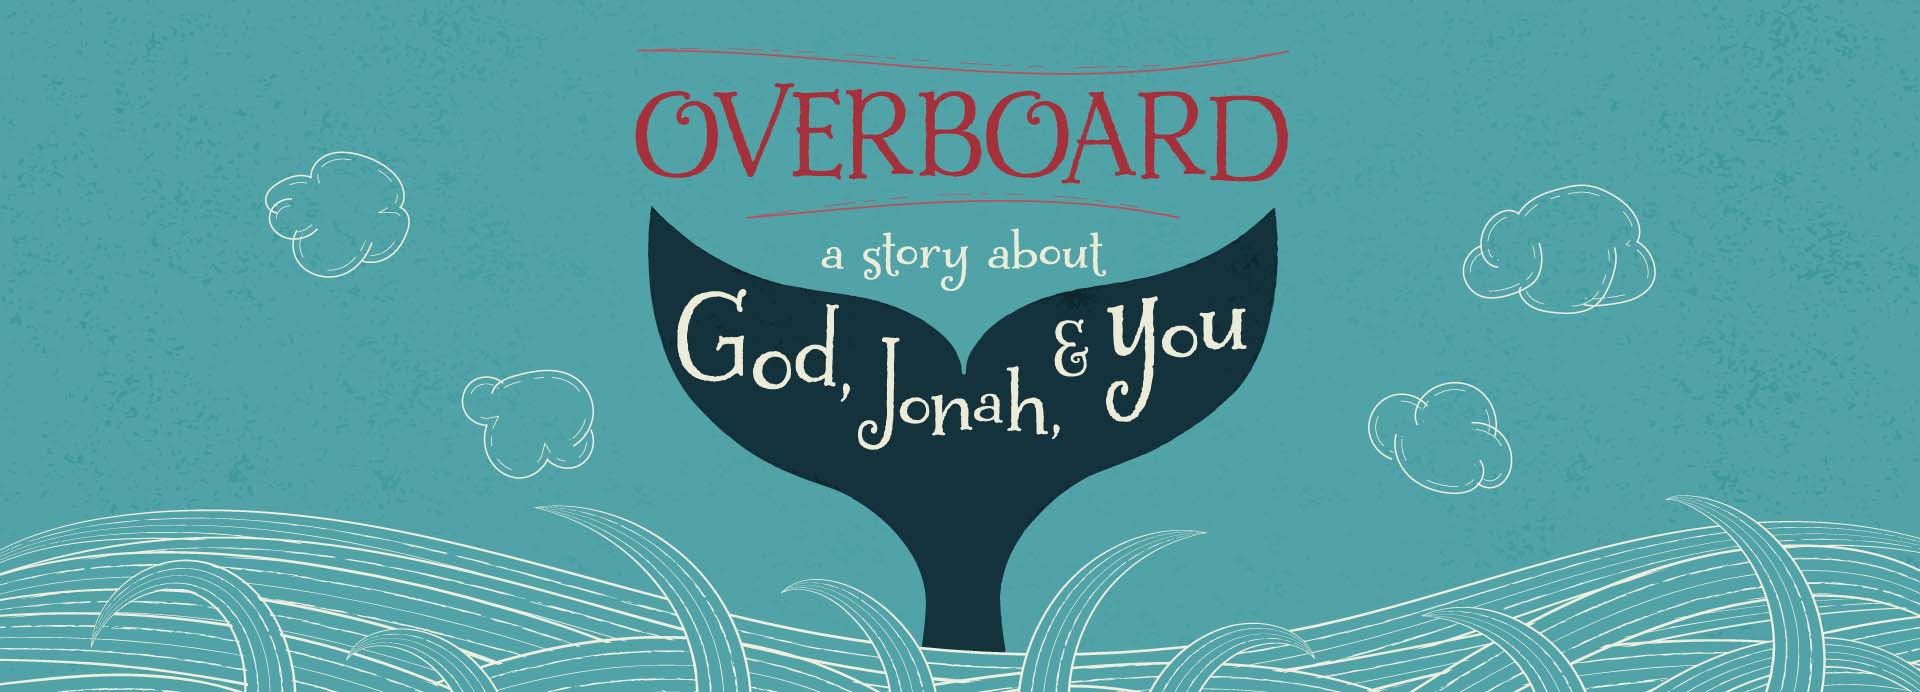 Overboard – A Story About God, Jonah, and You